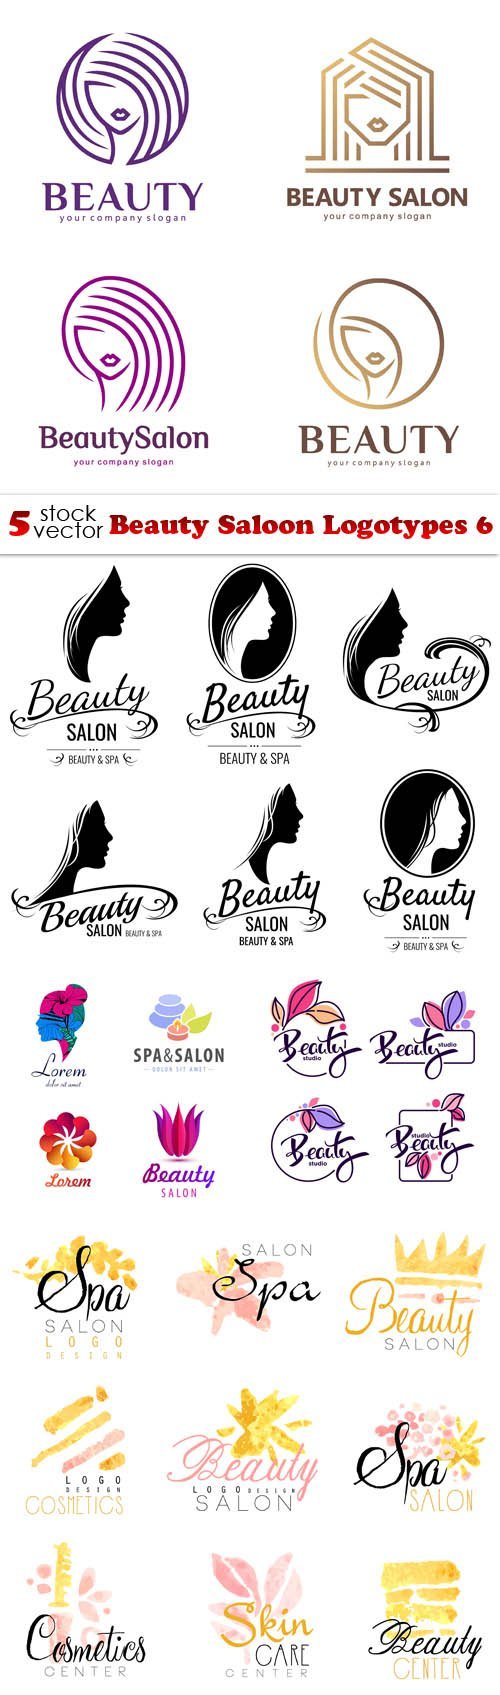 Vectors - Beauty Saloon Logotypes 6